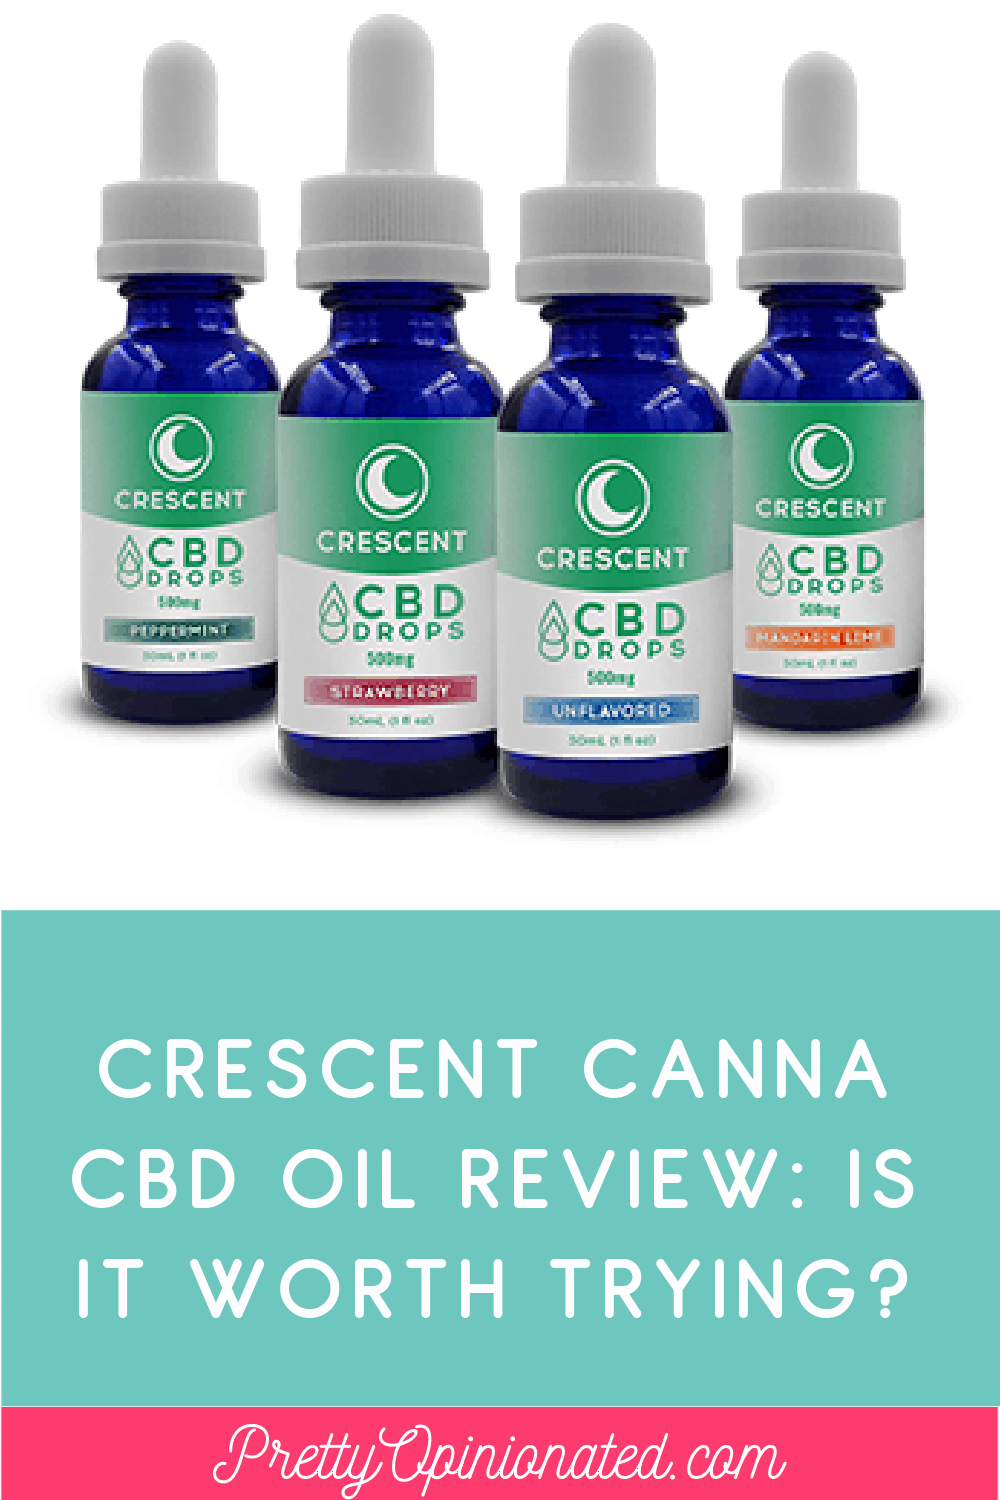 Looking for a Crescent Canna CBD Oil review to find out if it's worth trying? I've got you covered! Read on for my complete thoughts on the varieties, taste, and effectiveness (for me) of this affordable options.